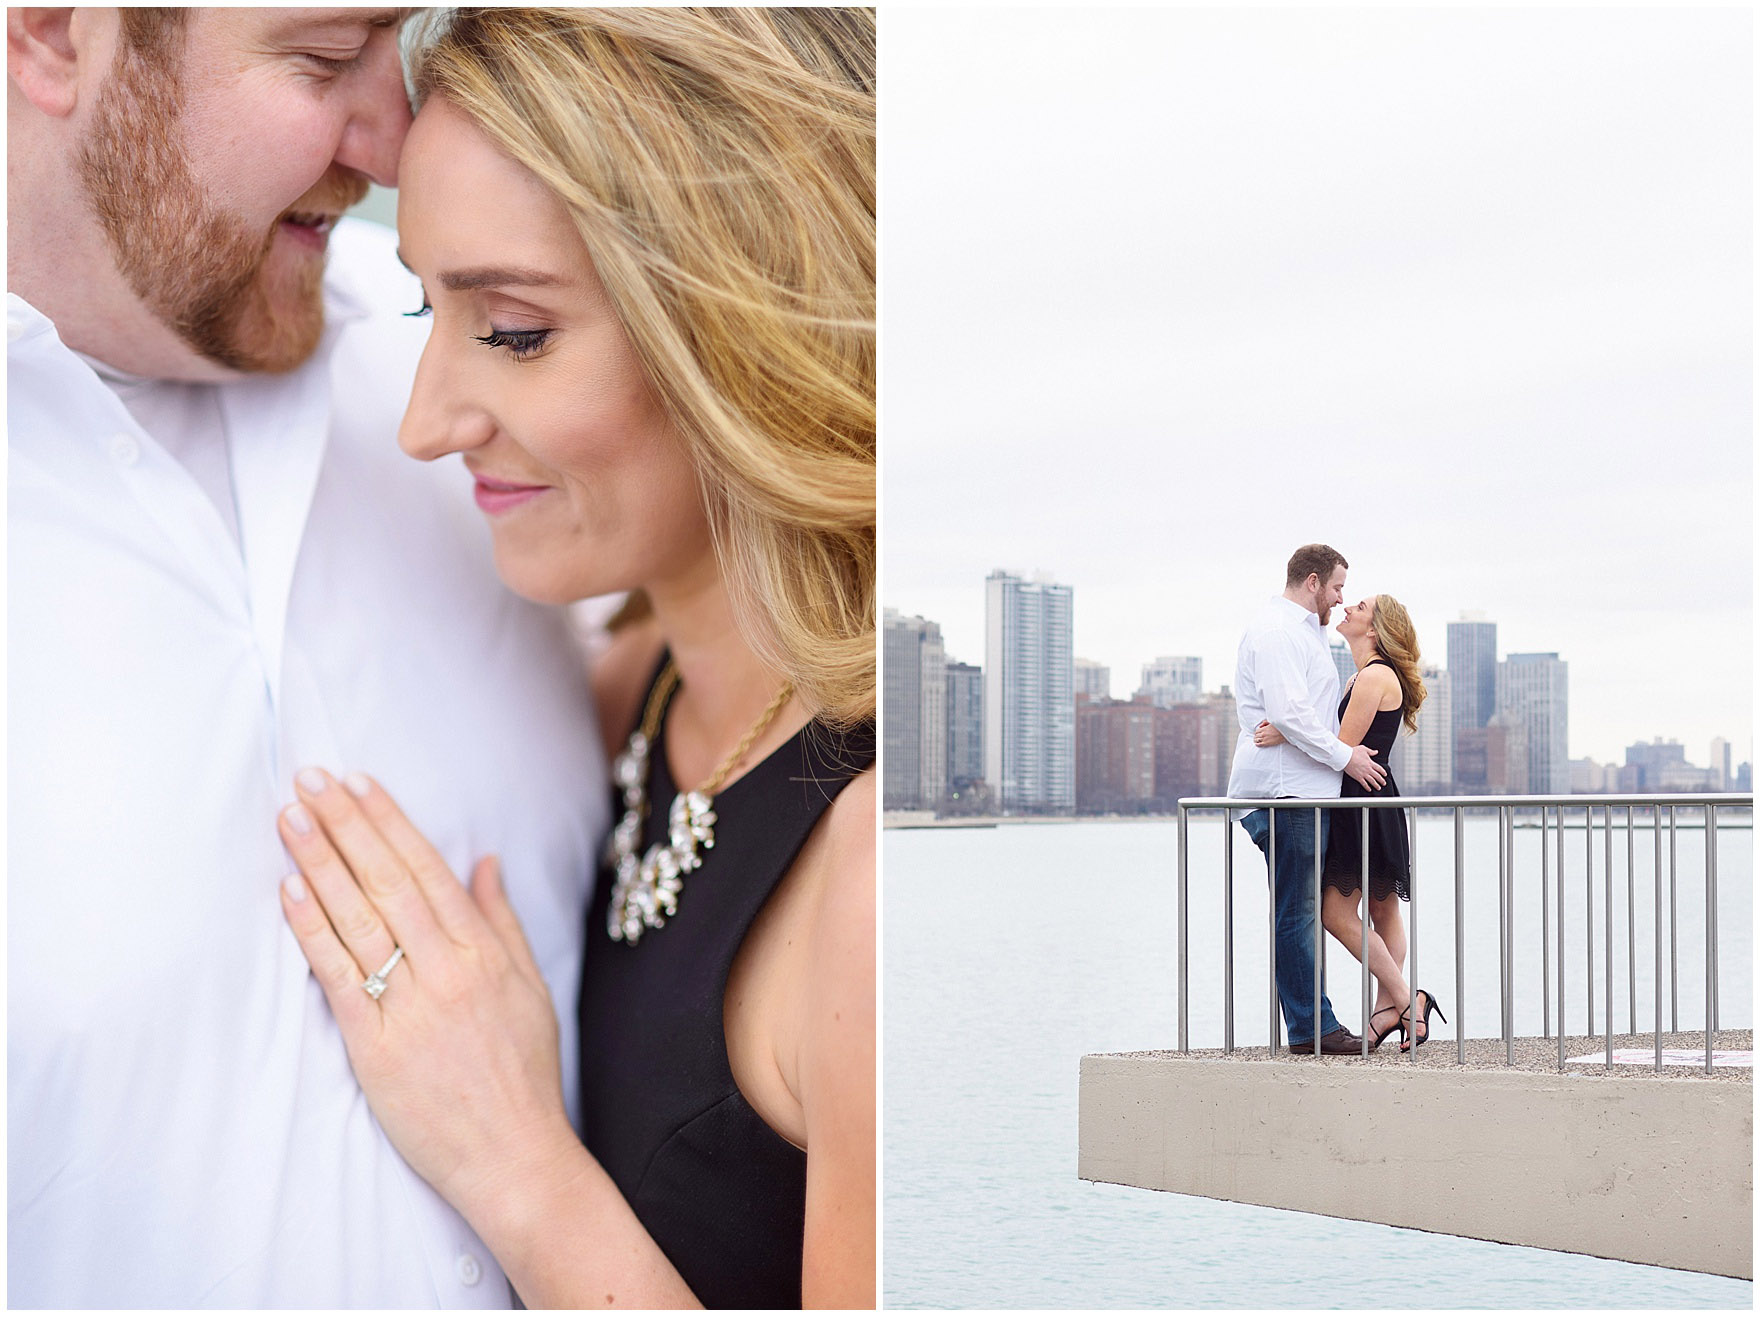 A bride and groom-to-be pose at Milton Olive Park during a downtown Chicago city engagement photography session.